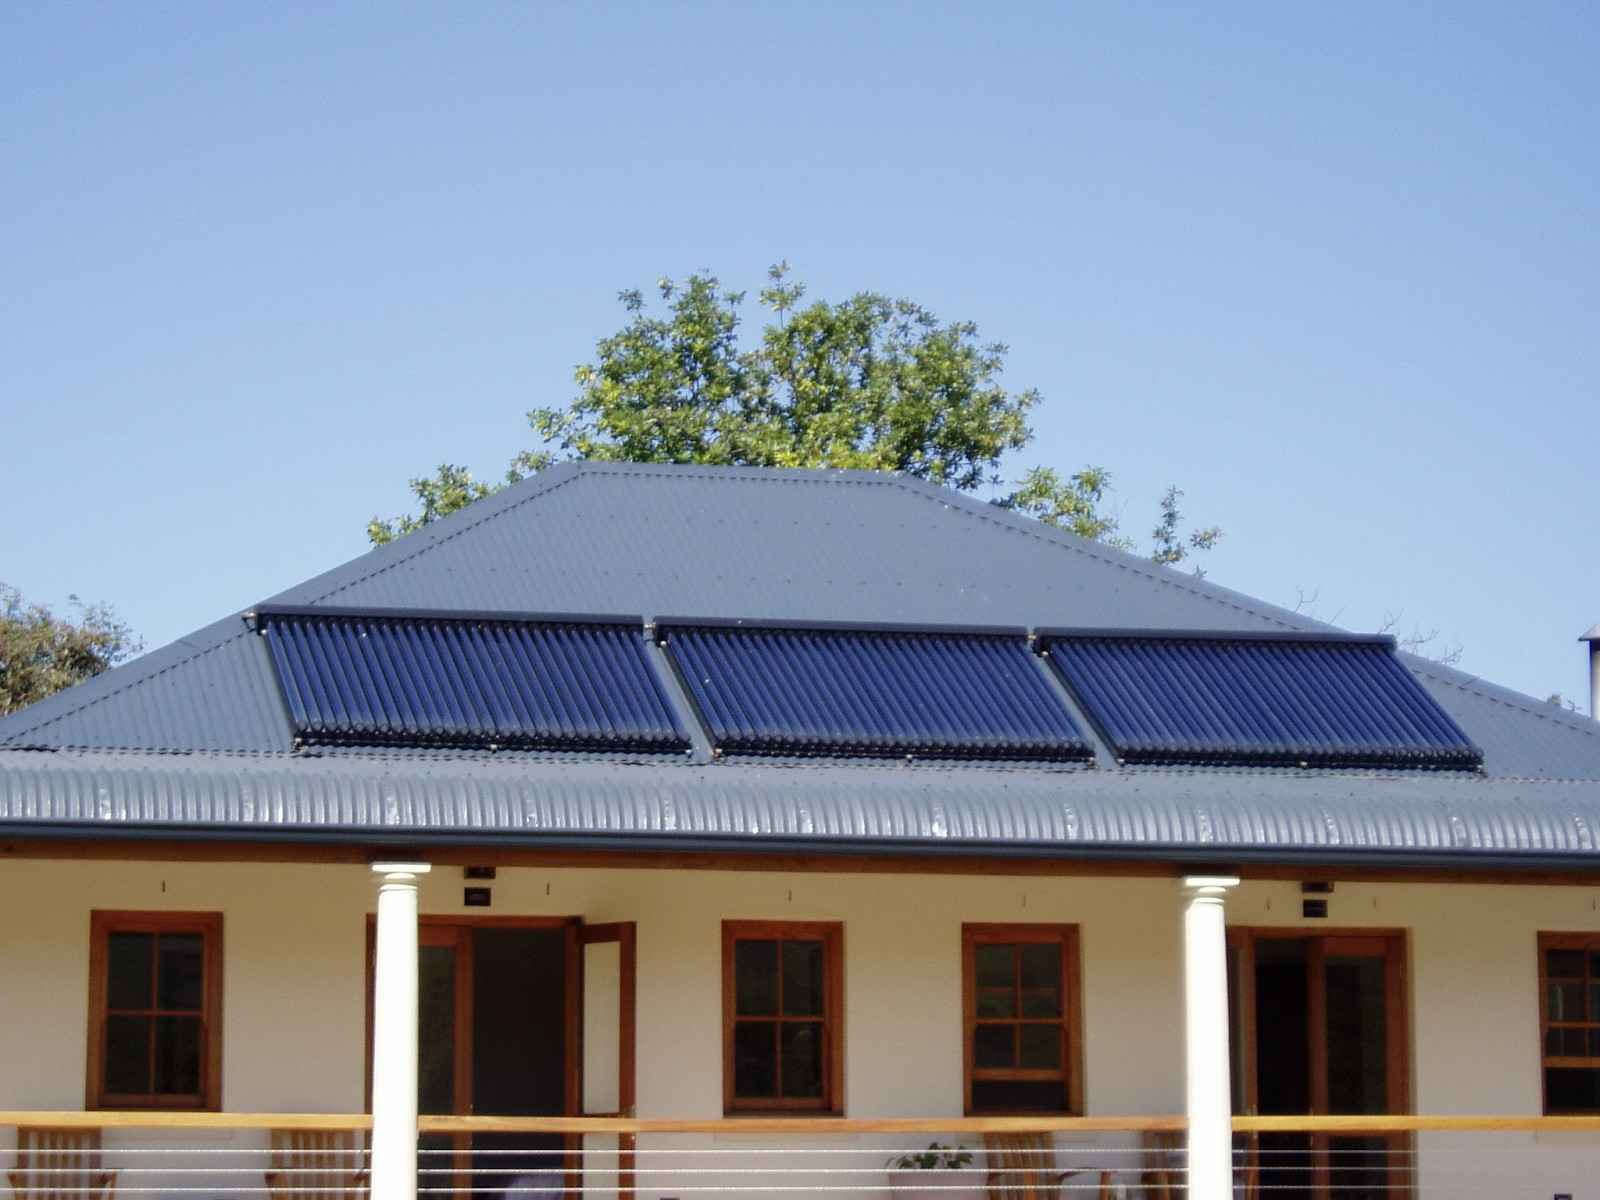 House with Evacuated-tube Solar Collectors